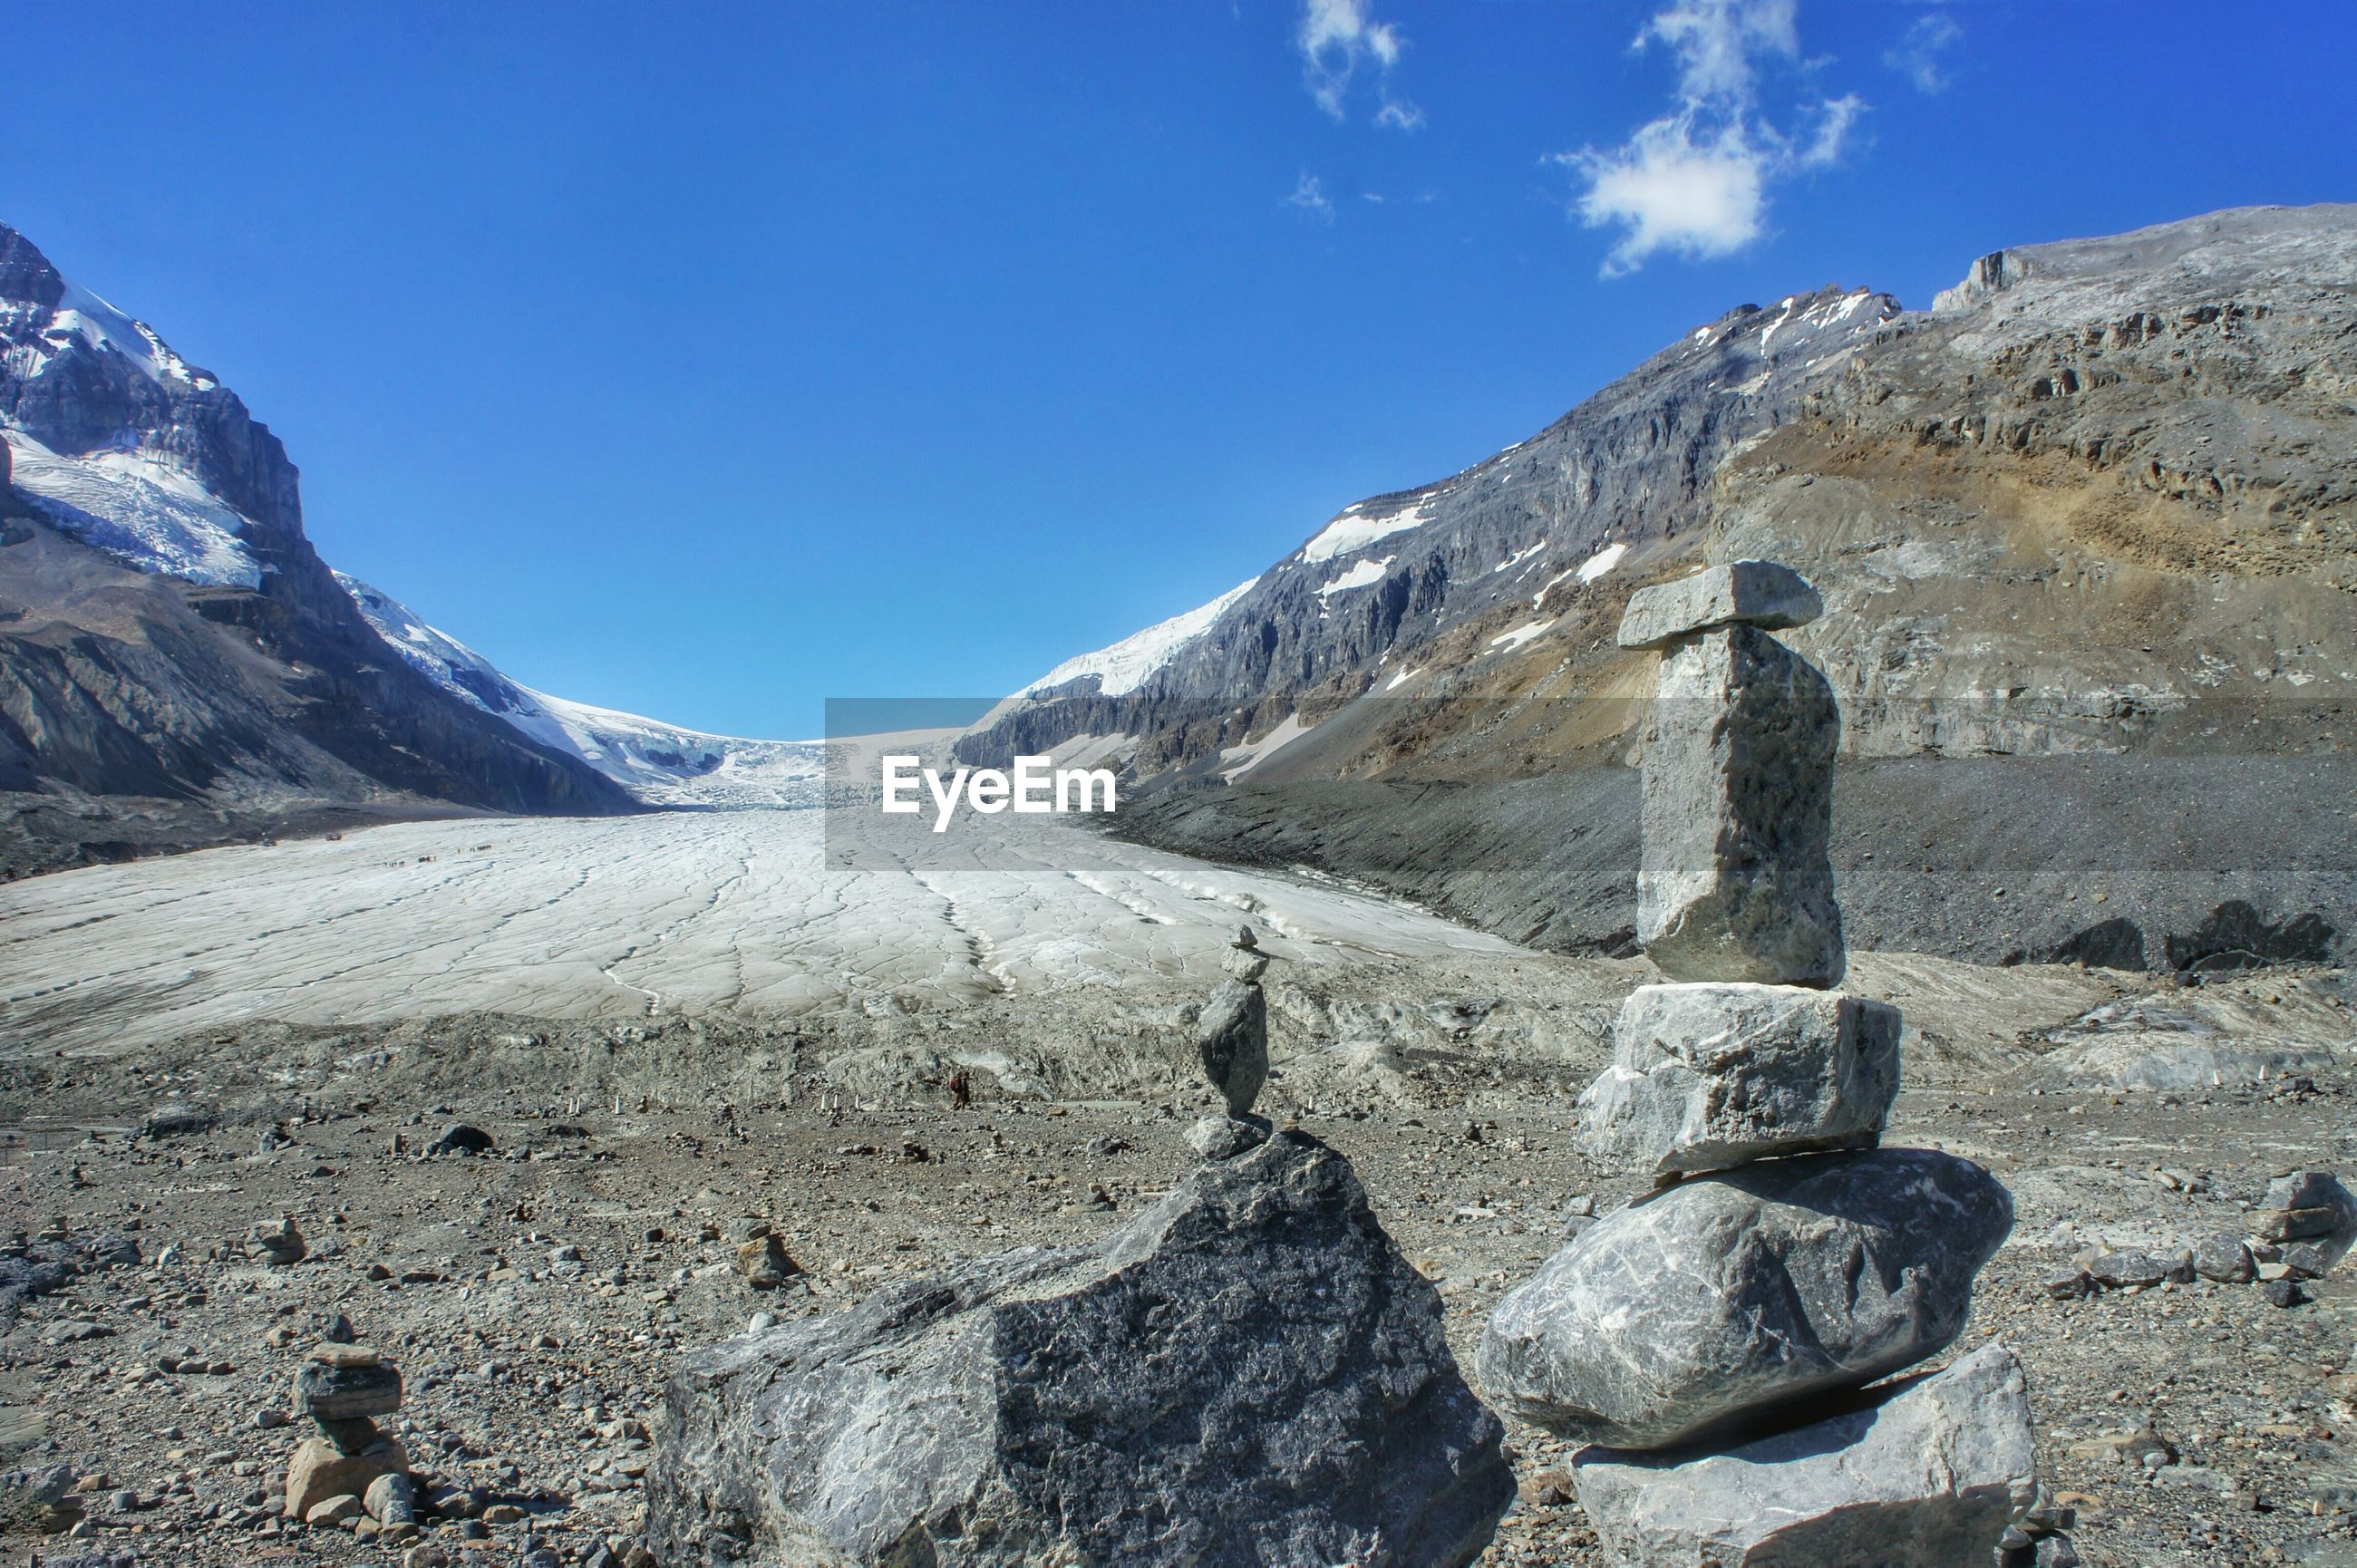 SCENIC VIEW OF MOUNTAIN AGAINST BLUE SKY